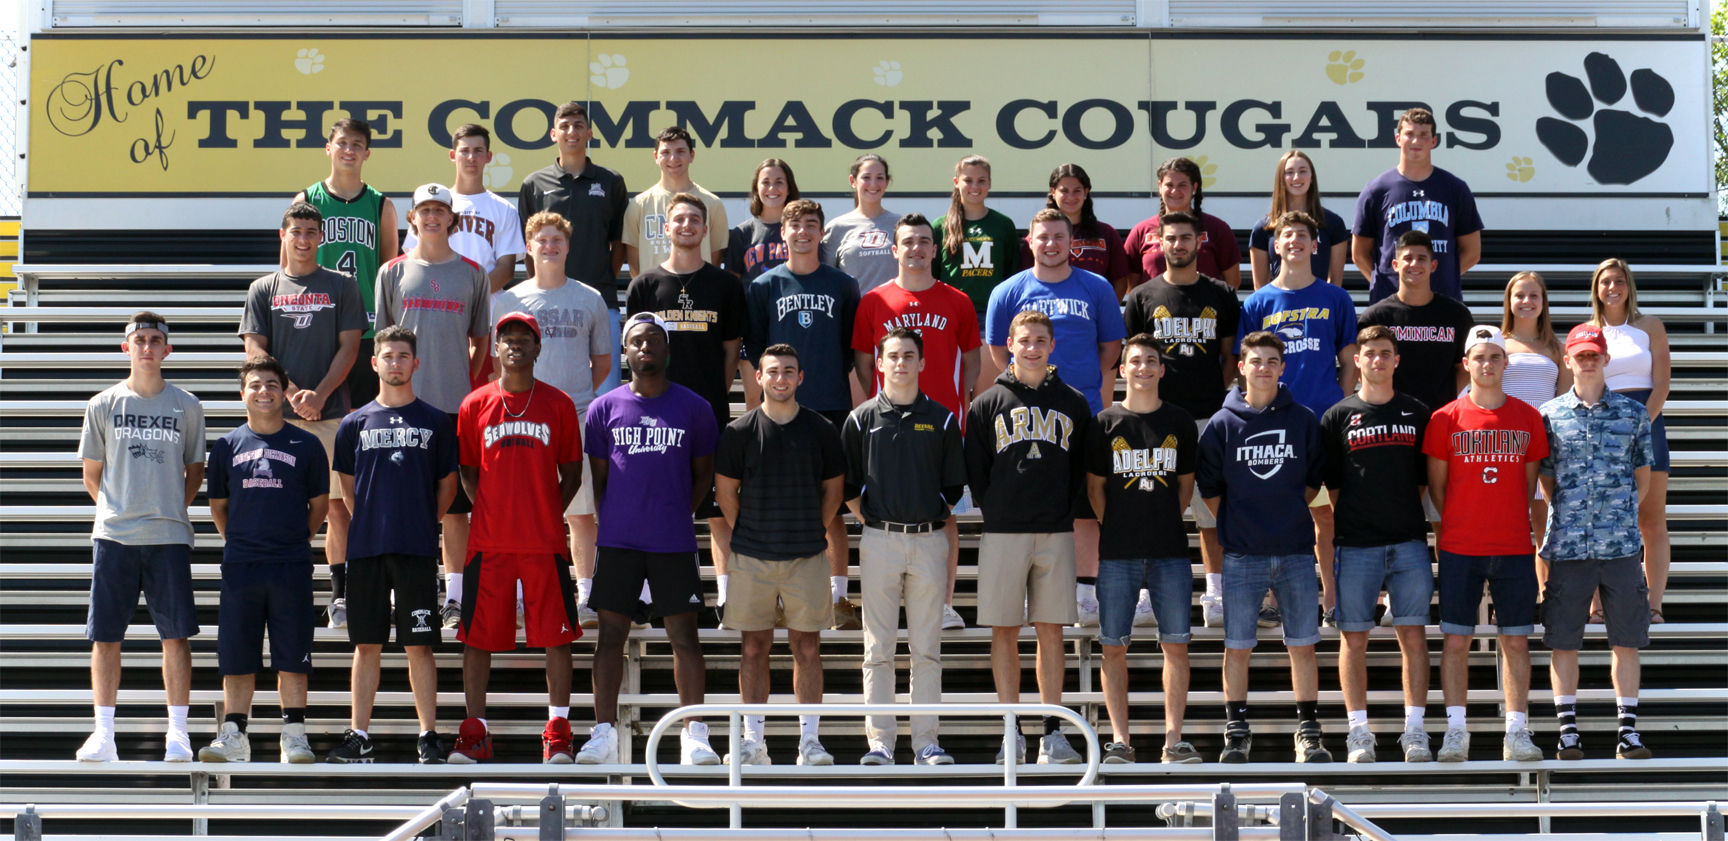 College Athletes!